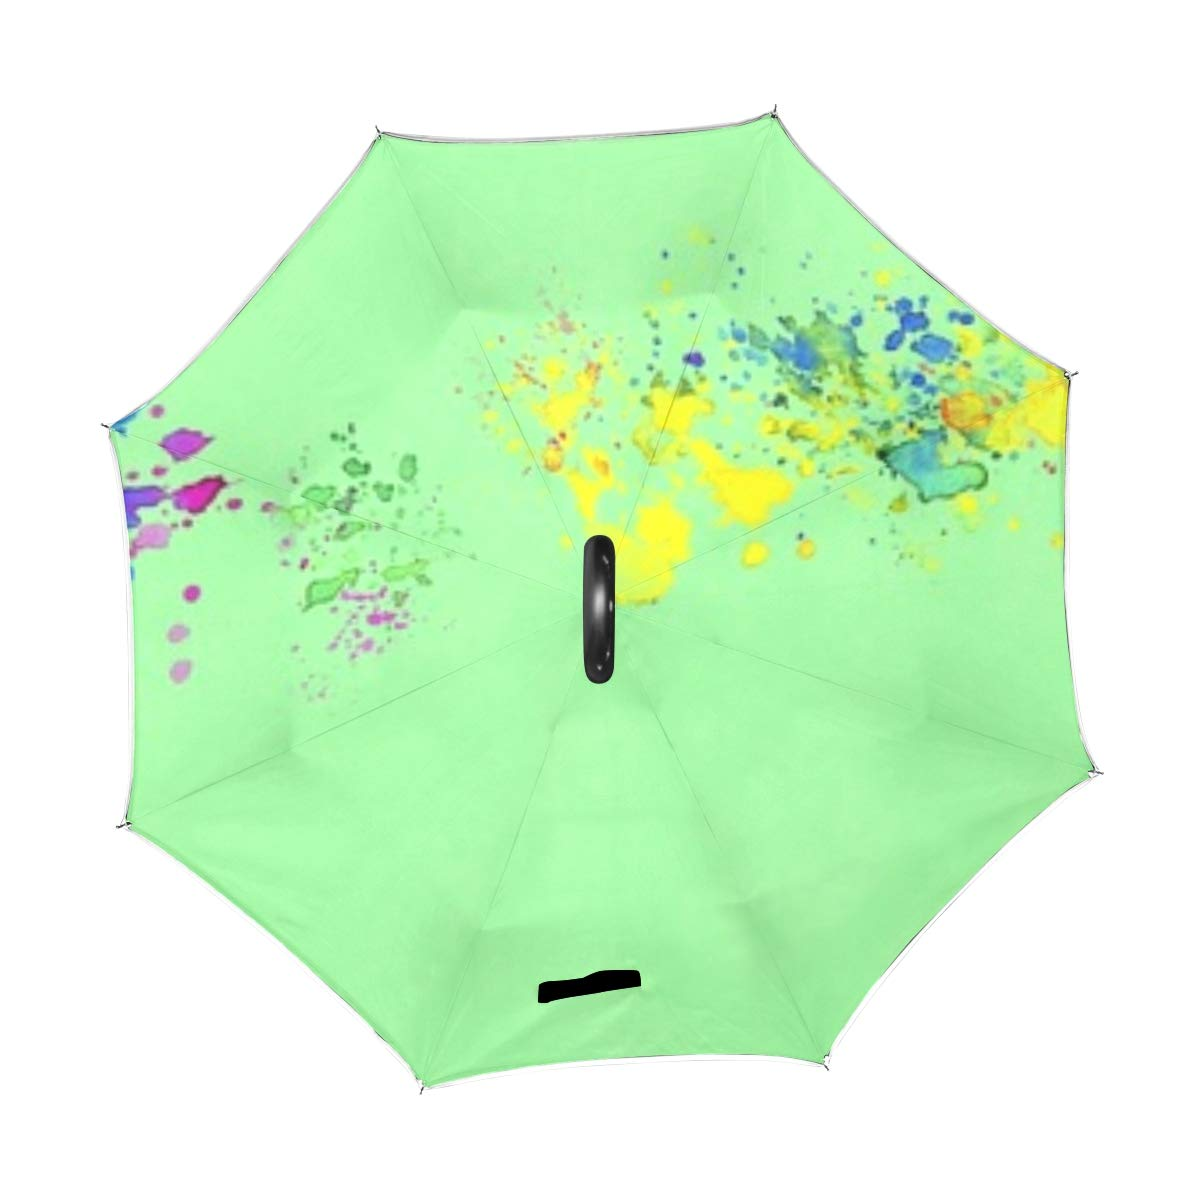 Jnseff Double Layer Inverted Banner Template Green Colorful School Fun Umbrellas Reverse Folding Umbrella Windproof Uv Protection Big Straight Umbrella for Car Rain Outdoor with C-Shaped Handle by Jnseff (Image #2)